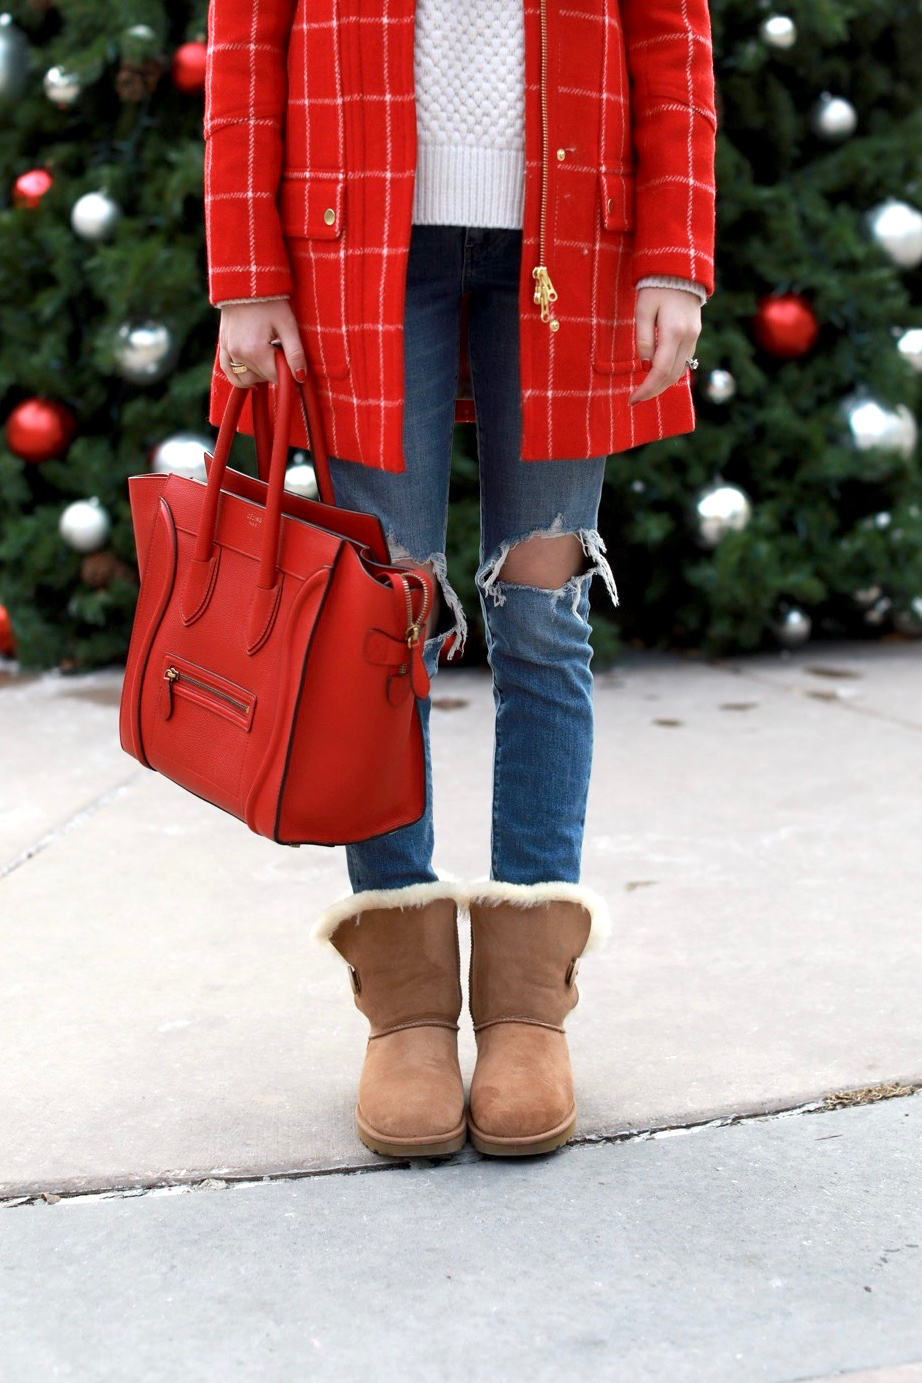 jcrew-check-red-winter-coat-parka-5